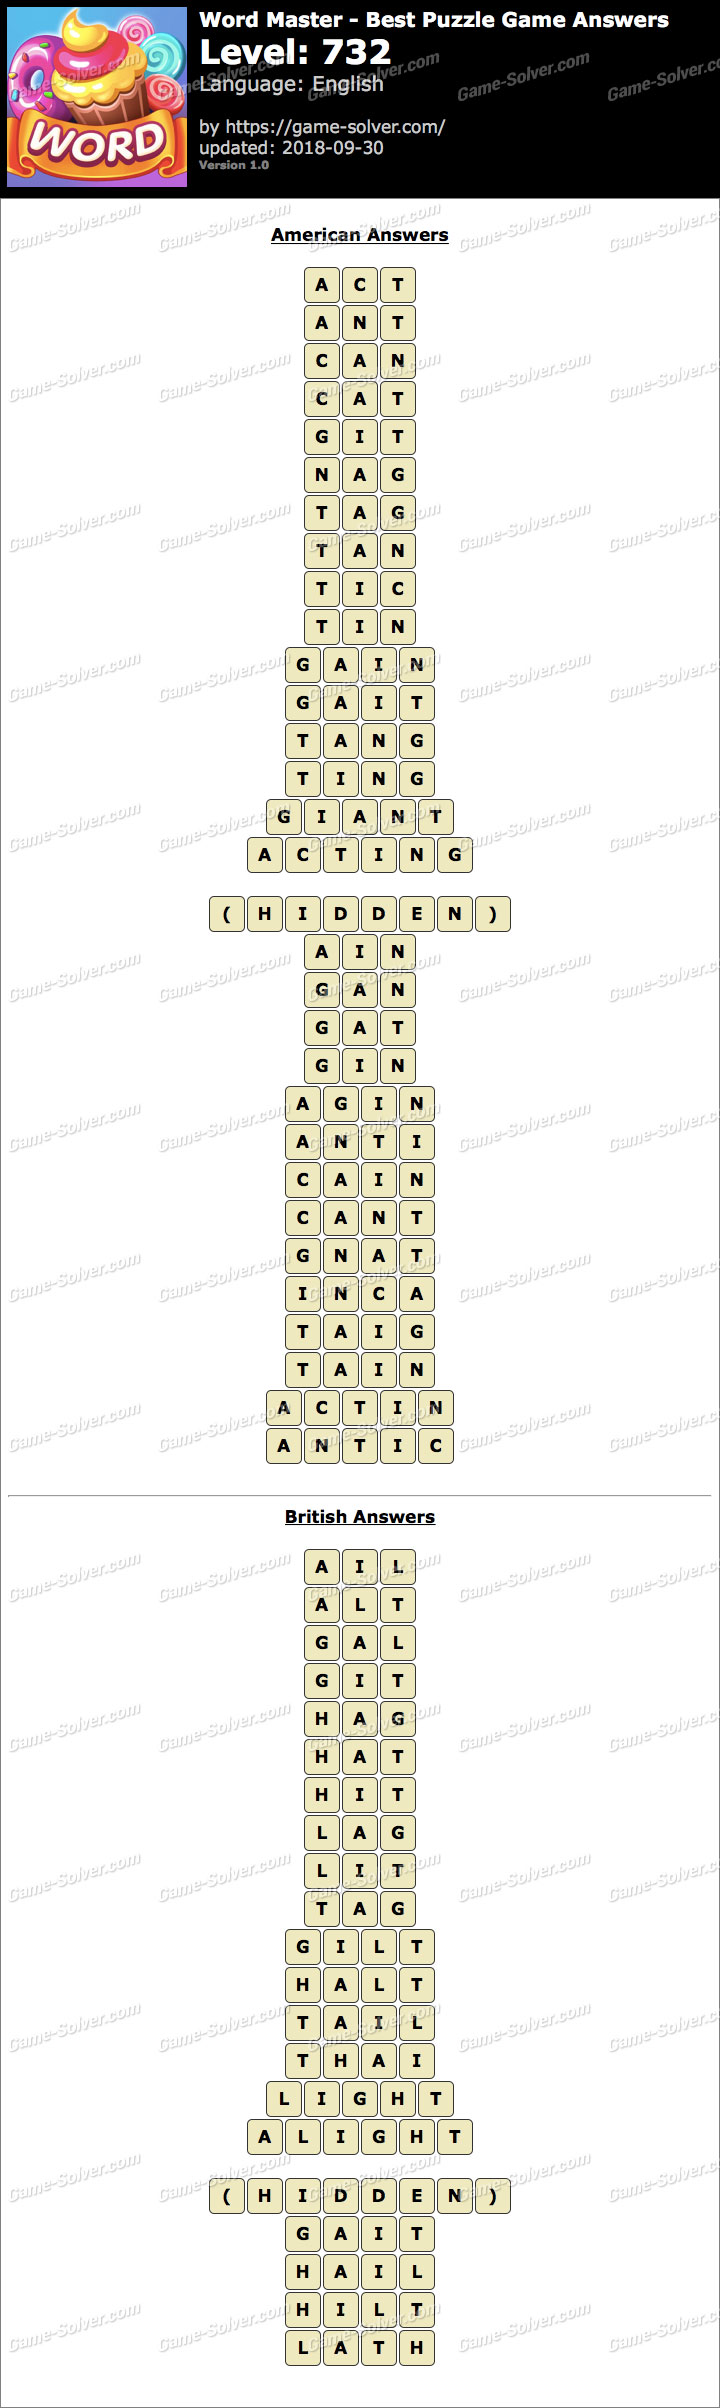 Word Master-Best Puzzle Game Level 732 Answers